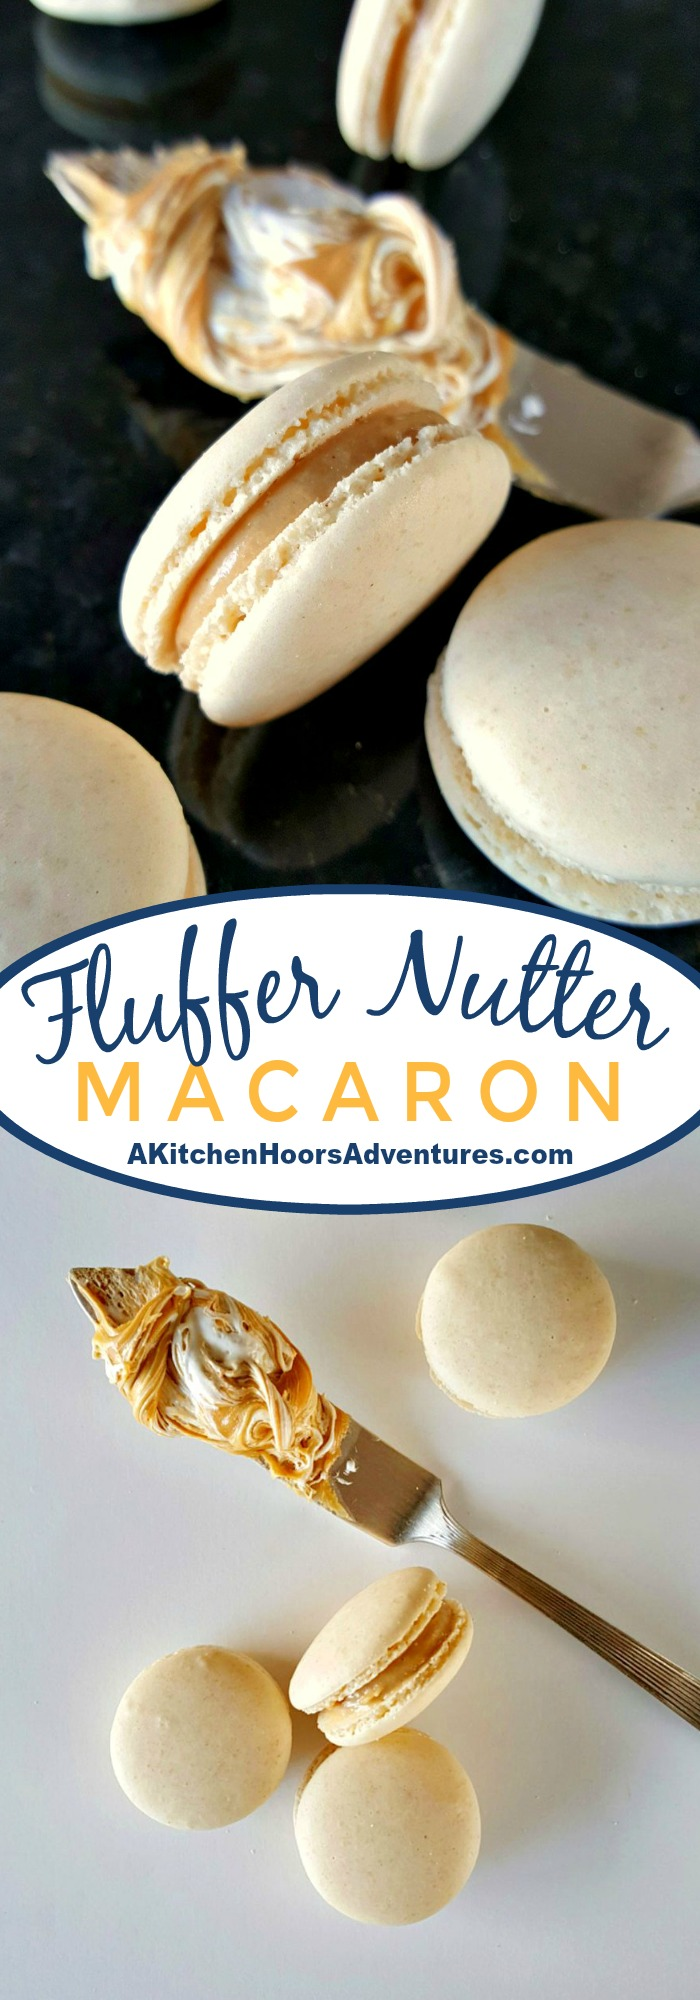 A childhood favorite becomes an adult favorite. These Fluffernutter Macaron taste like the fun sandwich in an elegant macaron. #peanutbutterrecipe #peanutbutterday #peanutbutter #macaron #macaronrecipe